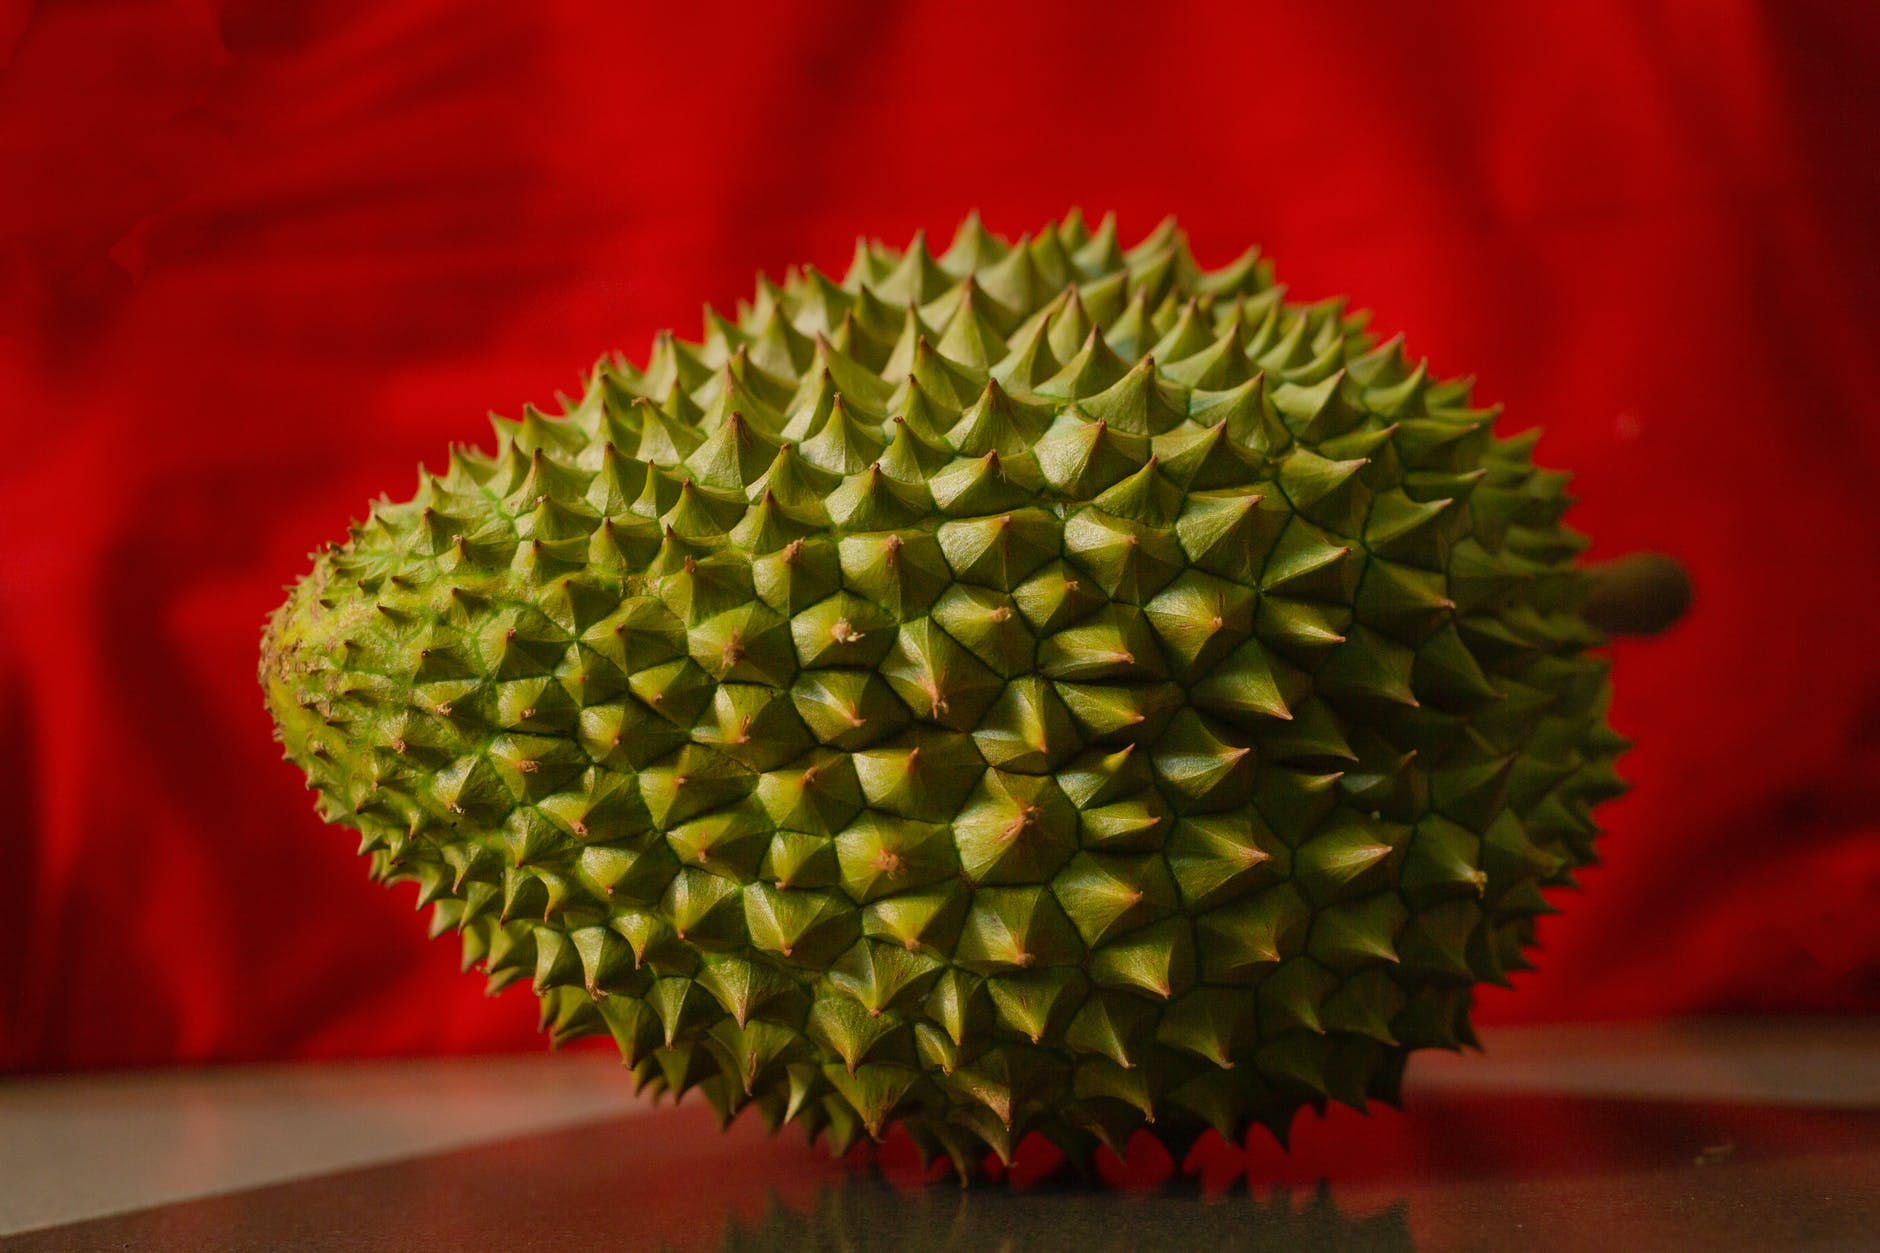 Satisfy Your Craving and Get the King of Fruits from 7 Locations in Selangor!